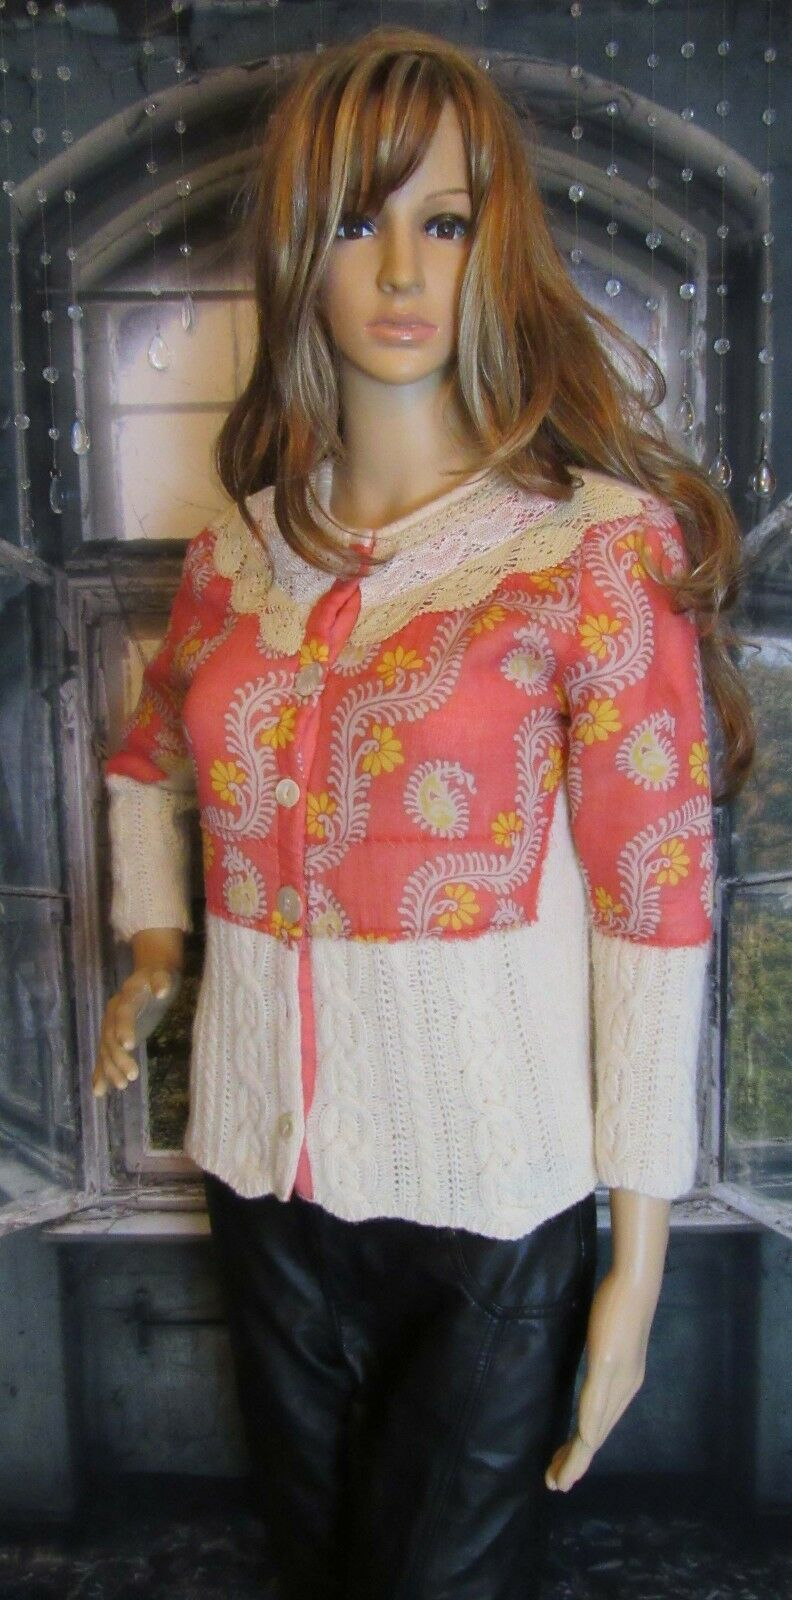 Free People People People Ivory Tangerine Mesh Layer Floral Print Sweater Size Medium Cute b0e287